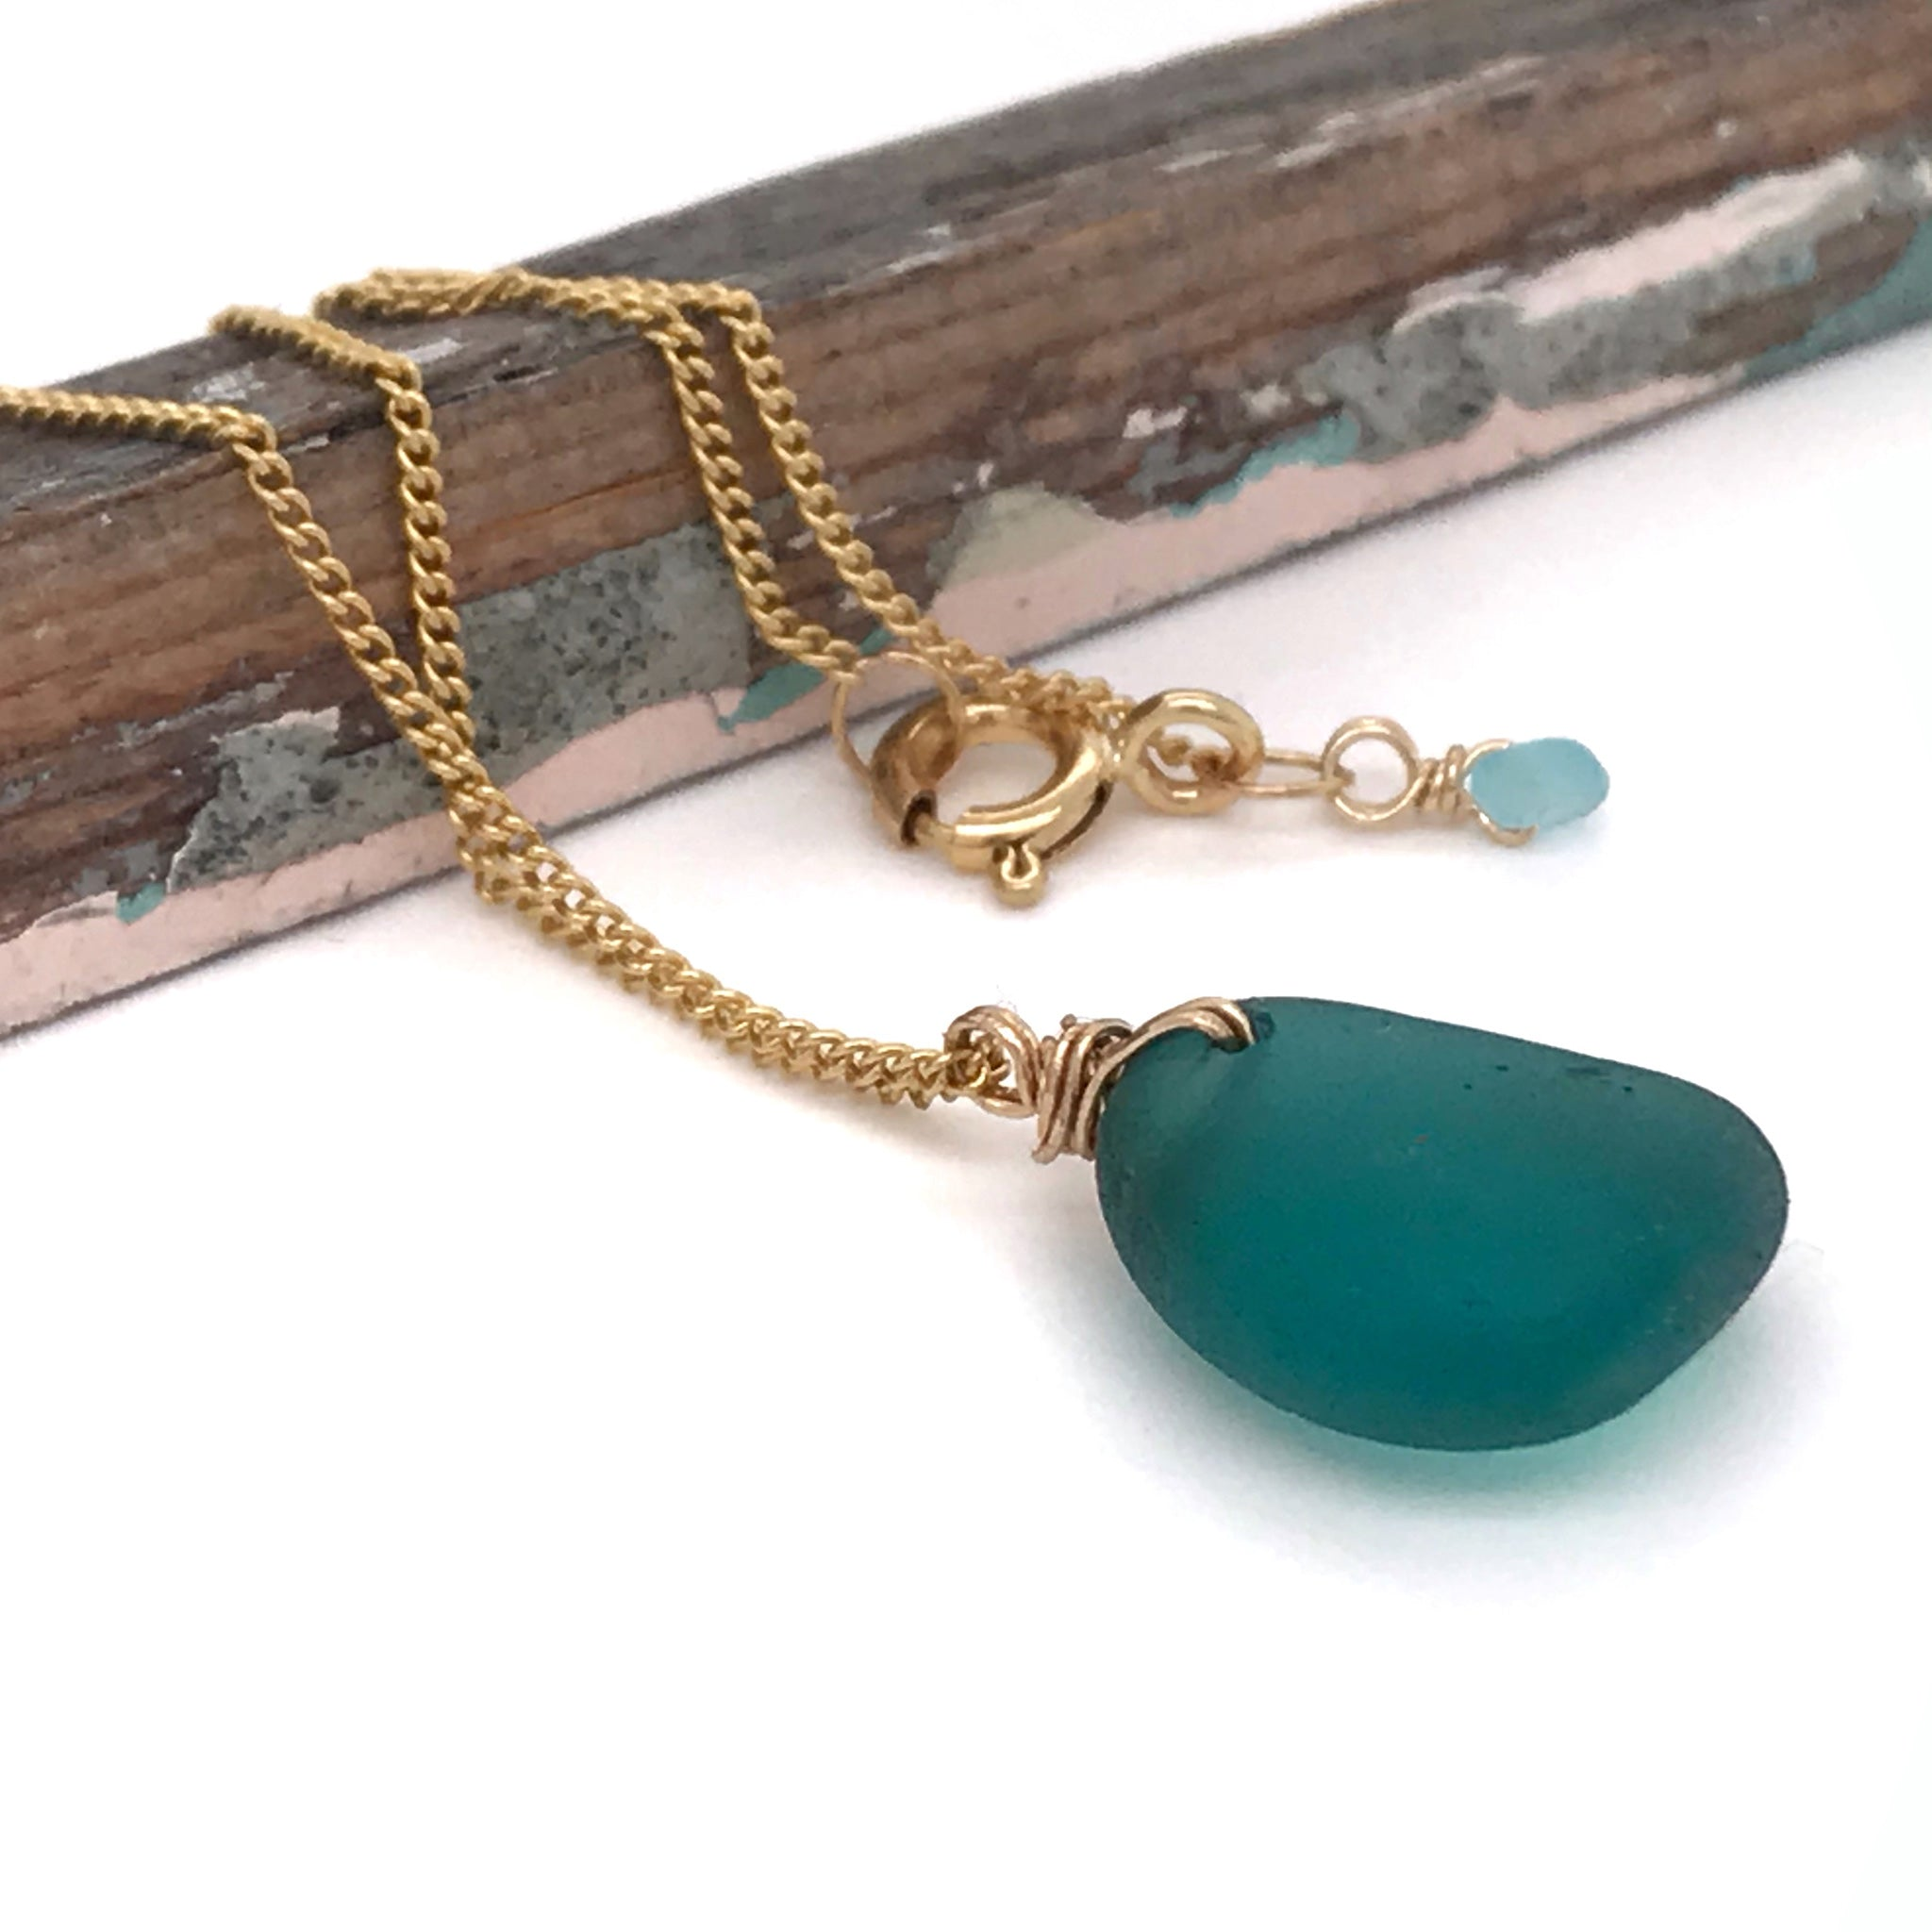 teal green necklace ocean glass on gold chain kriket broadhurst jewelry